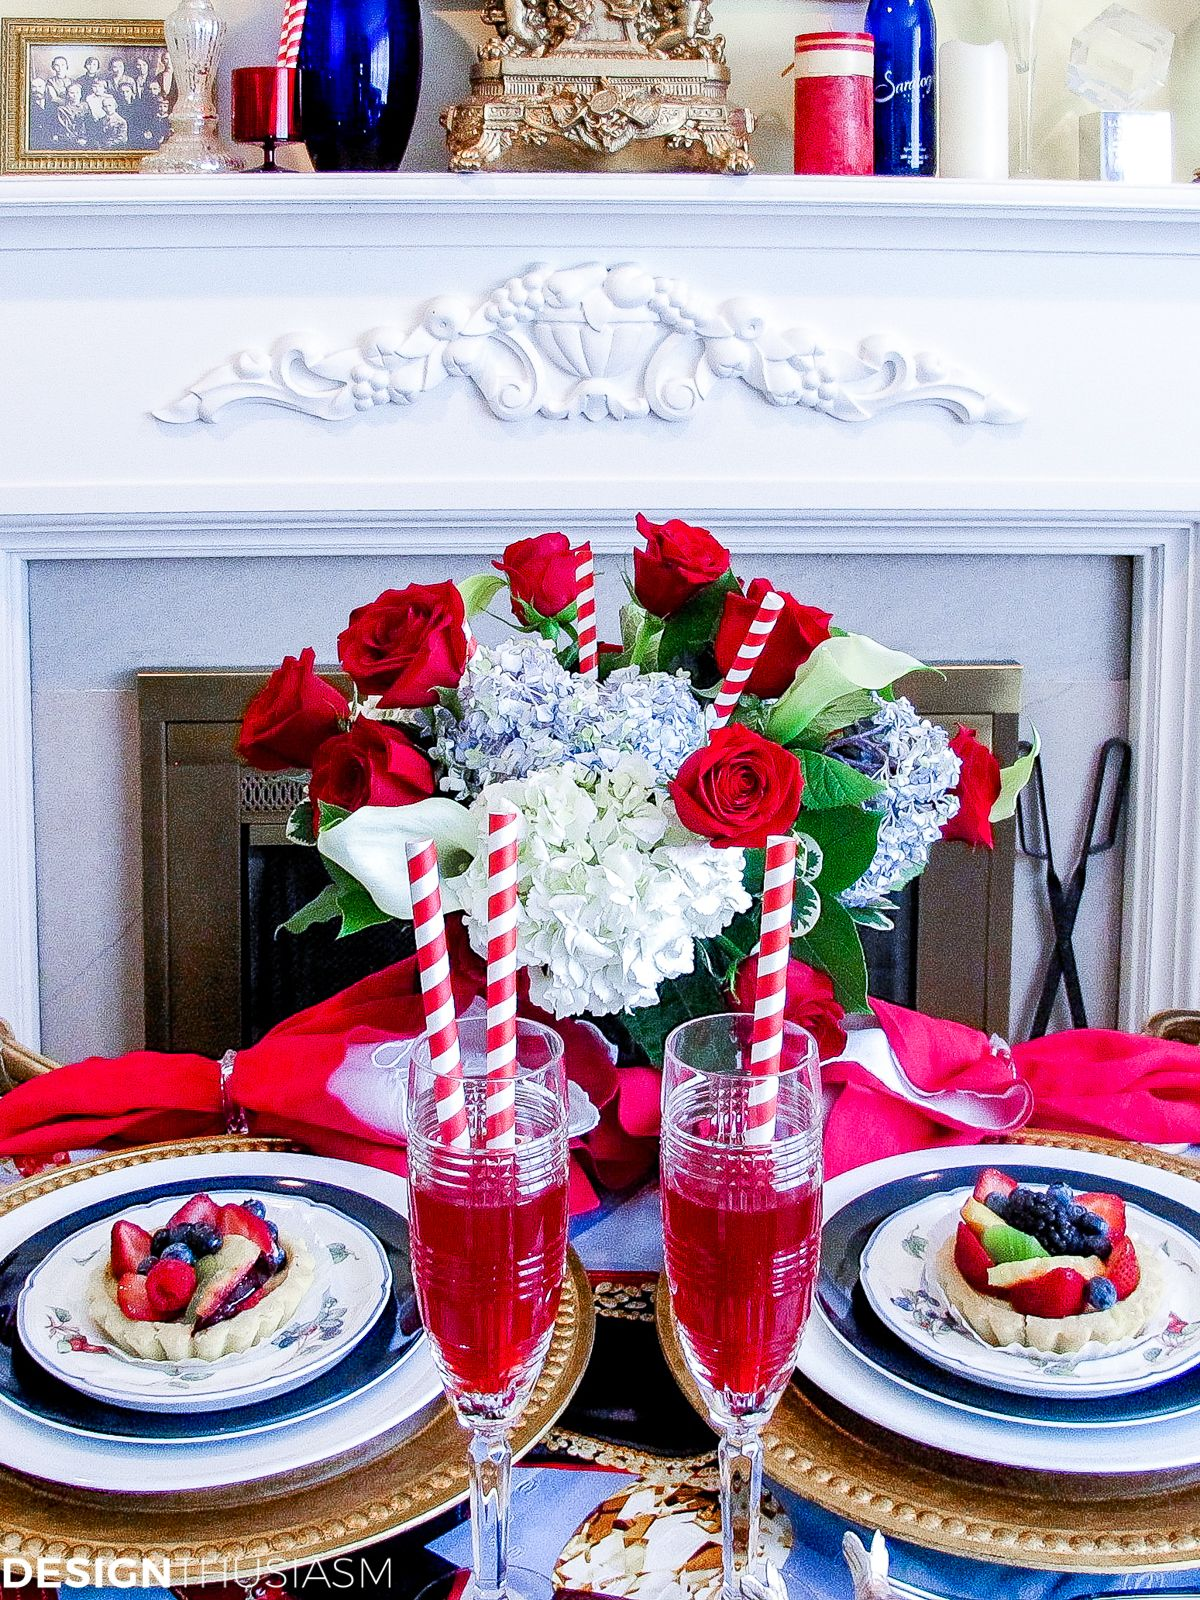 Summer Party Decorations 6 Colorful Tablescape Ideas Summer Party Decorations Table Decorations Patriotic Decorations